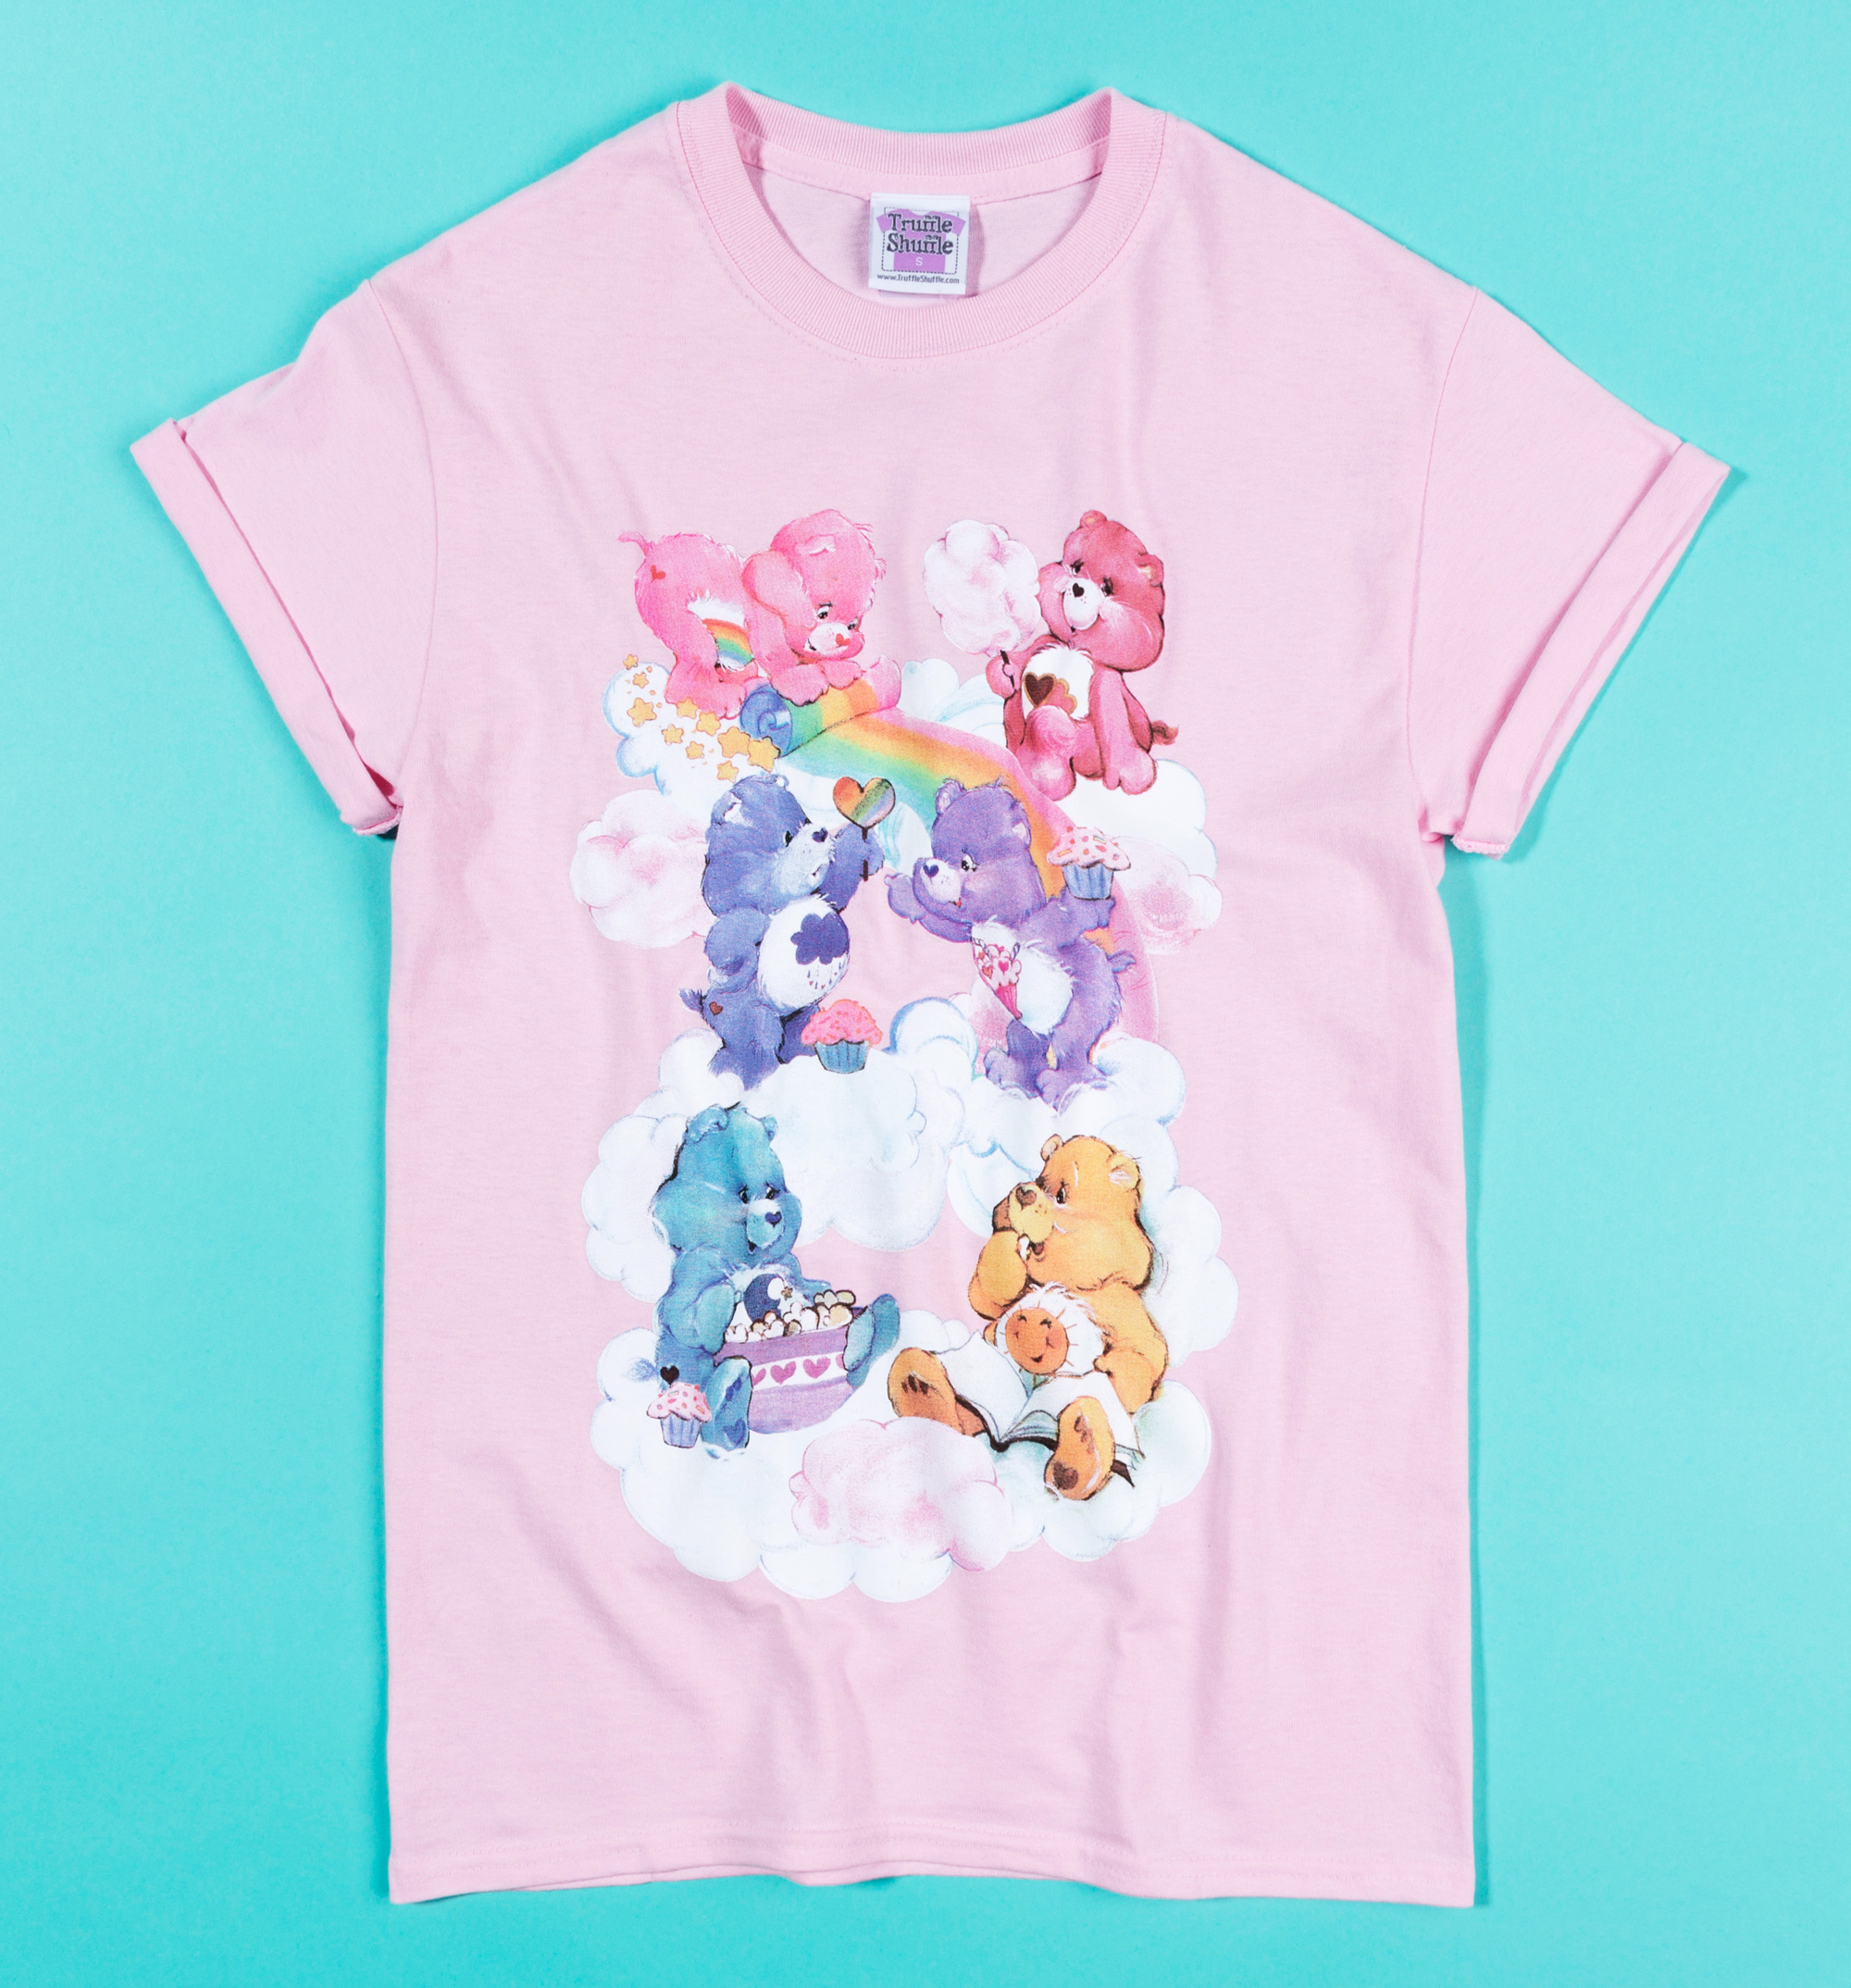 33ace51542e Women's Care Bears Sweet Treats Clouds Light Pink Boyfriend Fit Rolled  Sleeve T-Shirt - Designed in collaboration with Emily Jayne of  LoveEmilyJayne